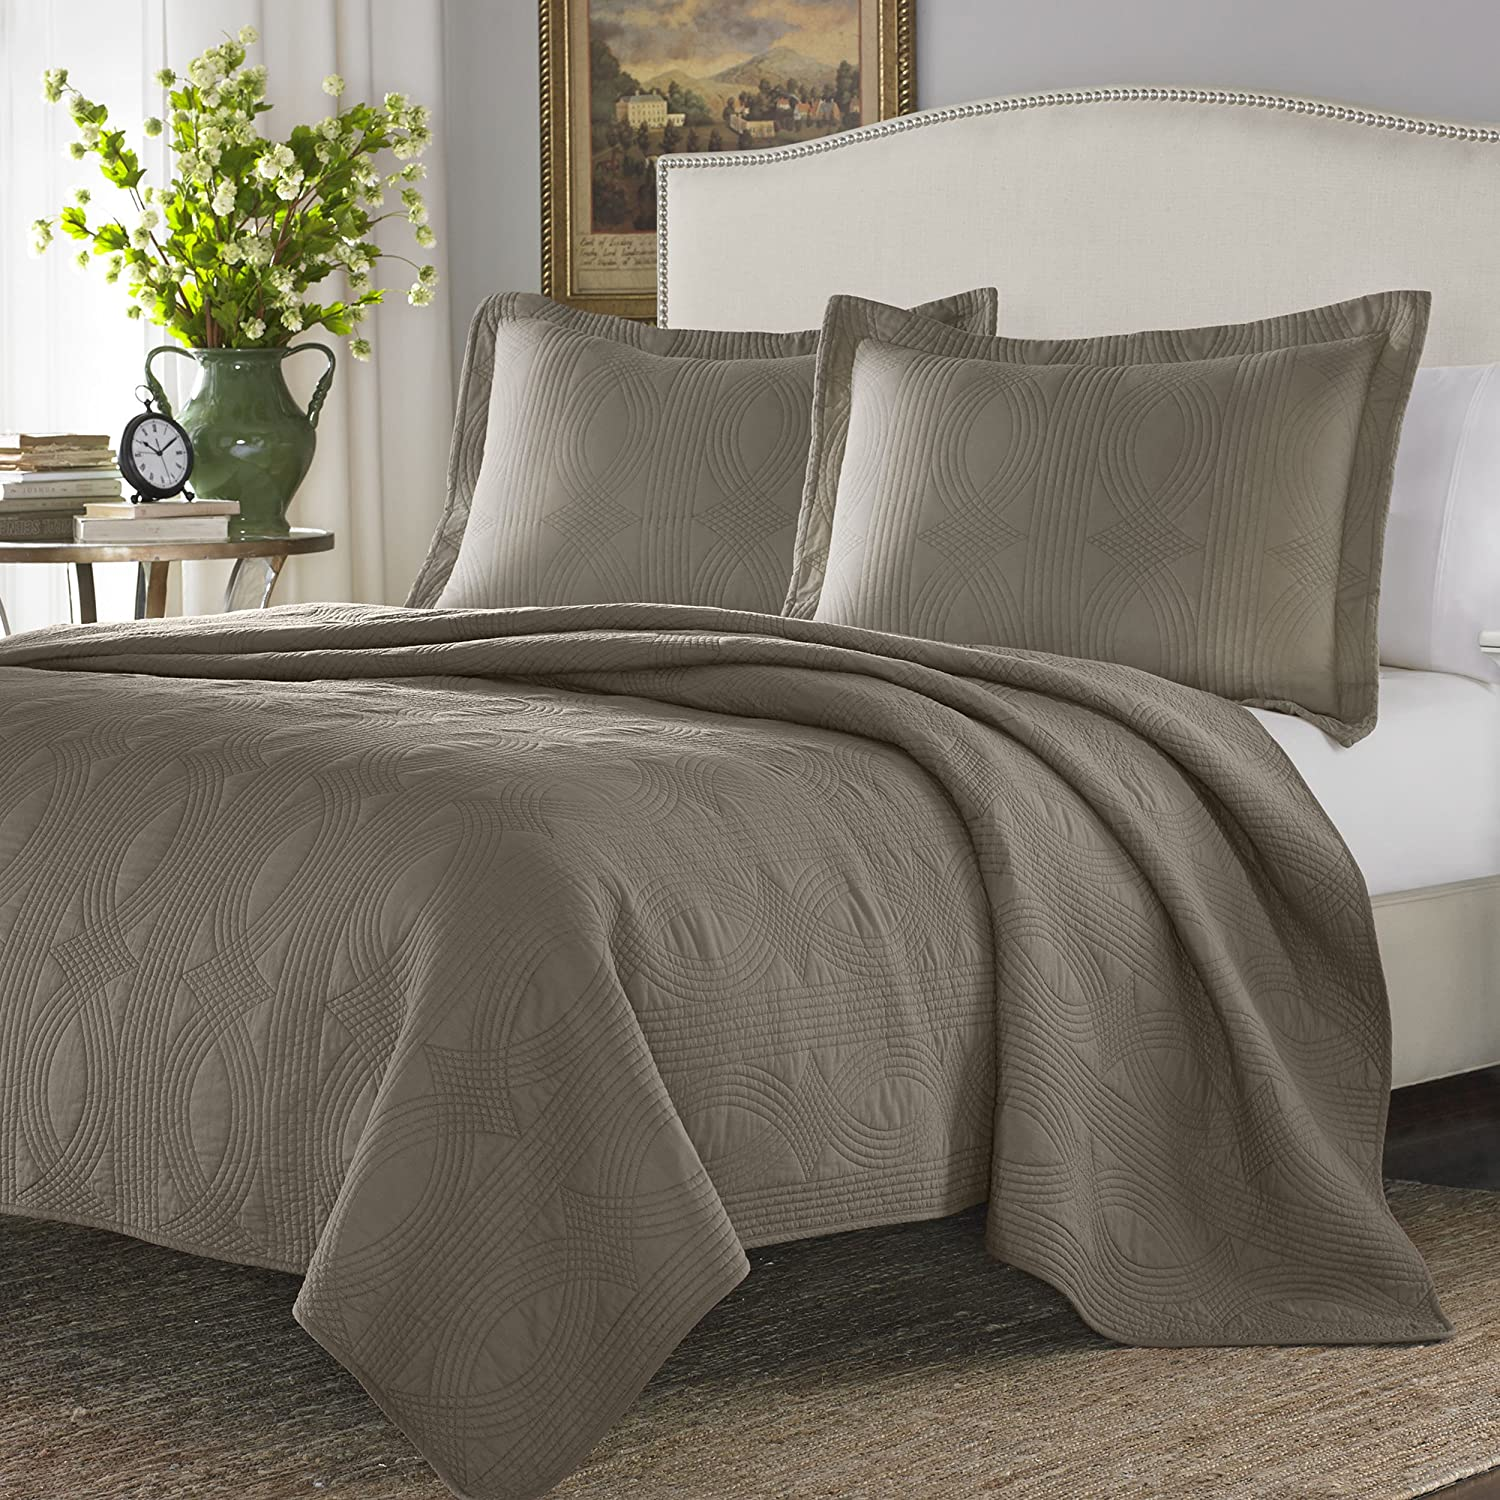 Stone Cottage Cotton Quilt Set, Full/Queen, Taupe